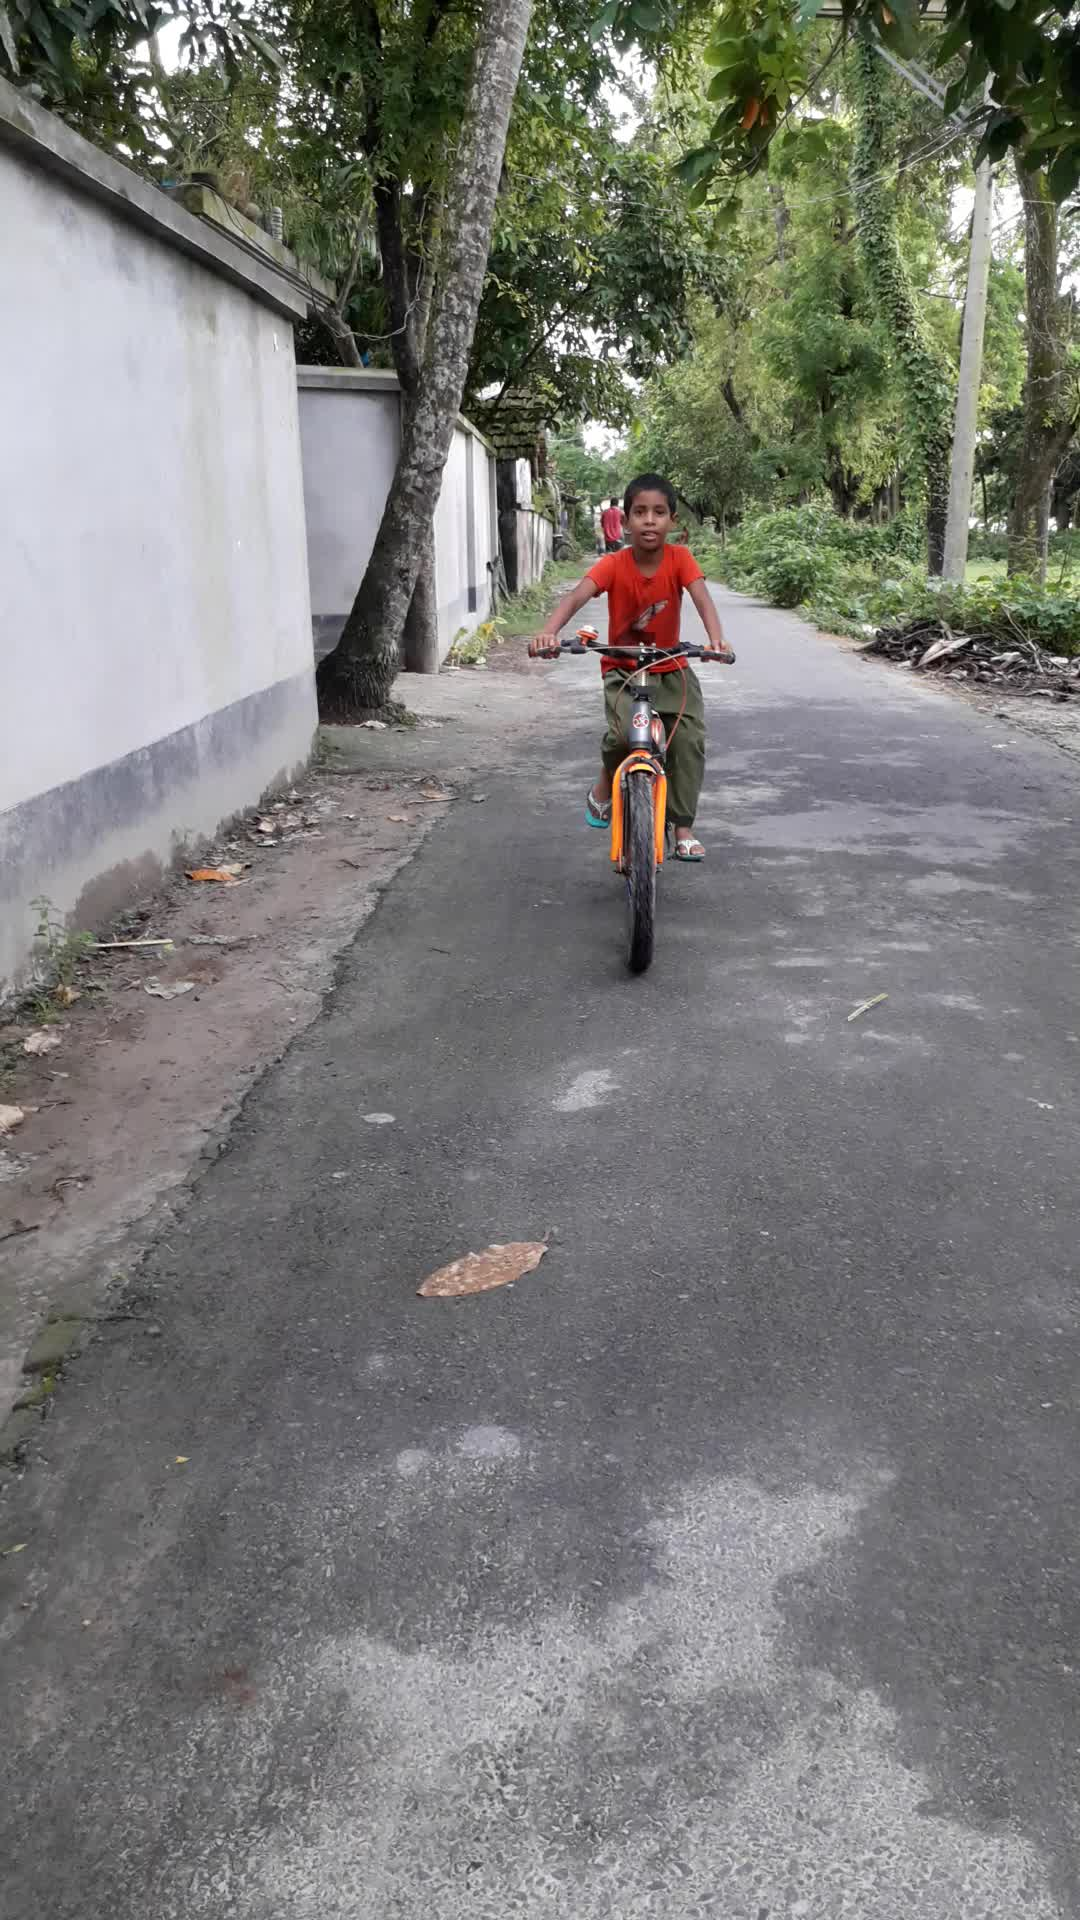 The younger brother is cycling on the street in front of our house in the afternoon,